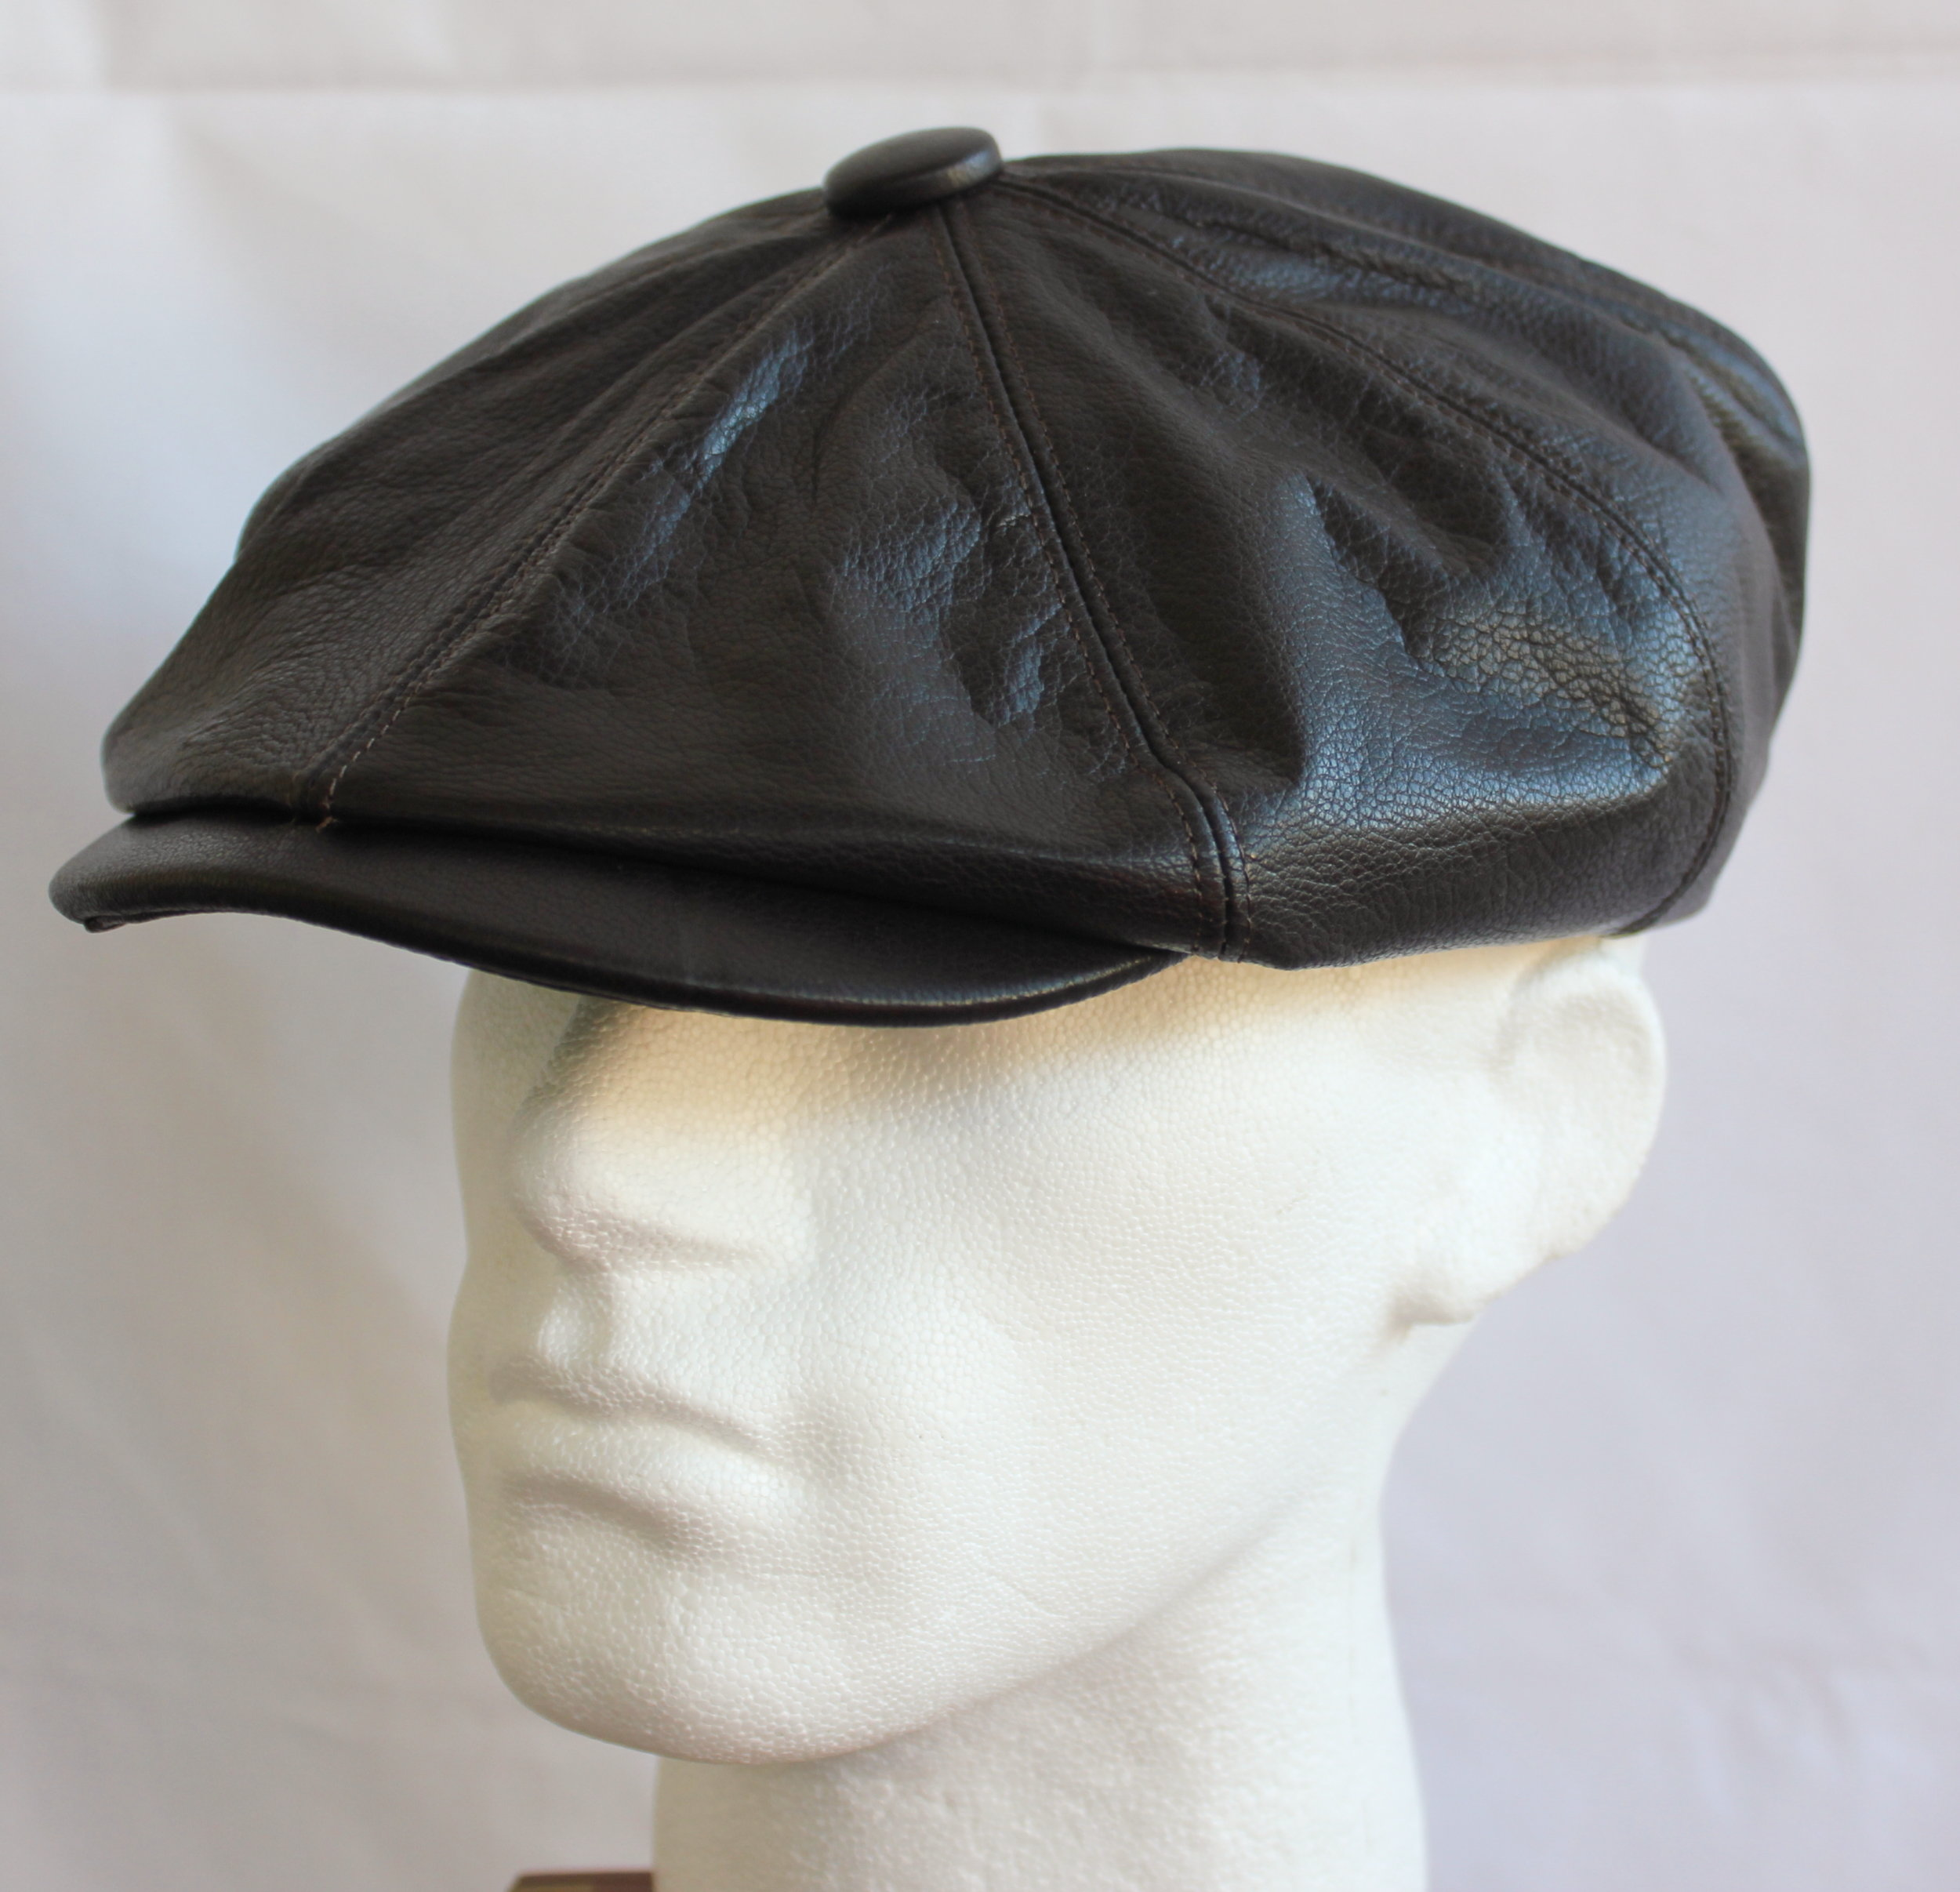 Olney Urban Leather Newsboy Cap R4722